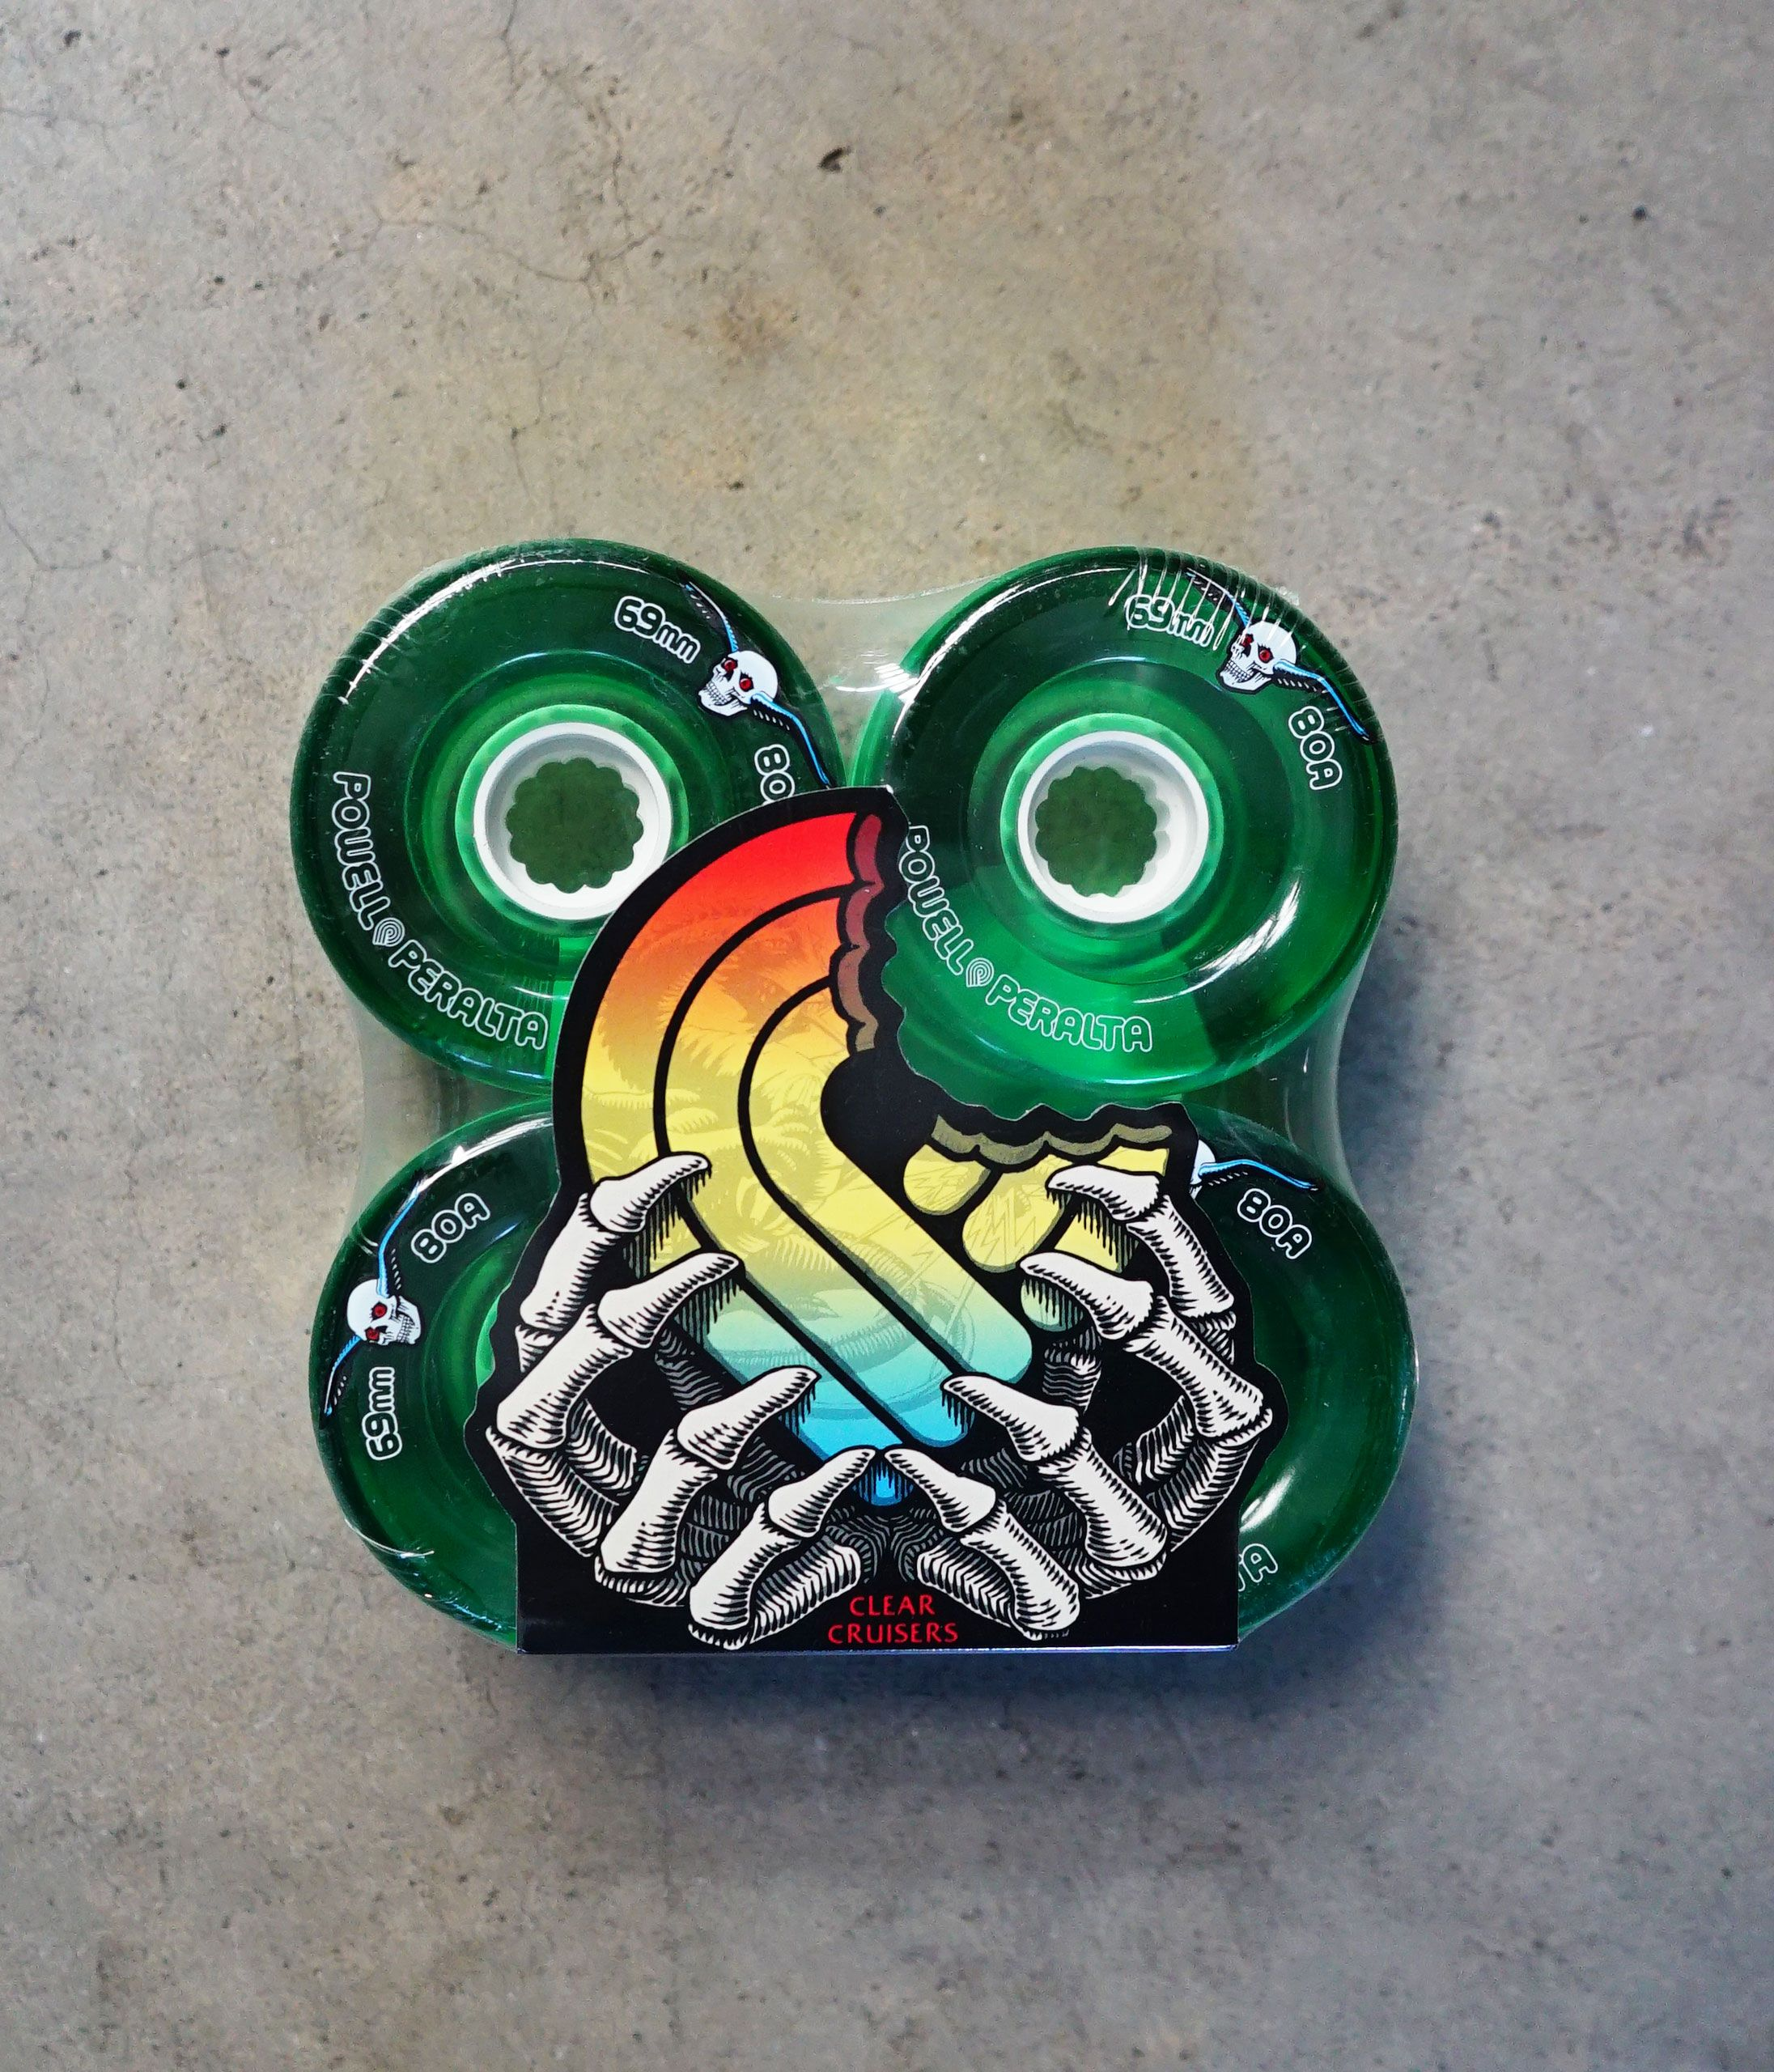 69mm 80a Clear Cruiser Atf In Green No More Falling On S Or Rocks While Pushing Down The Street These Wheels Go